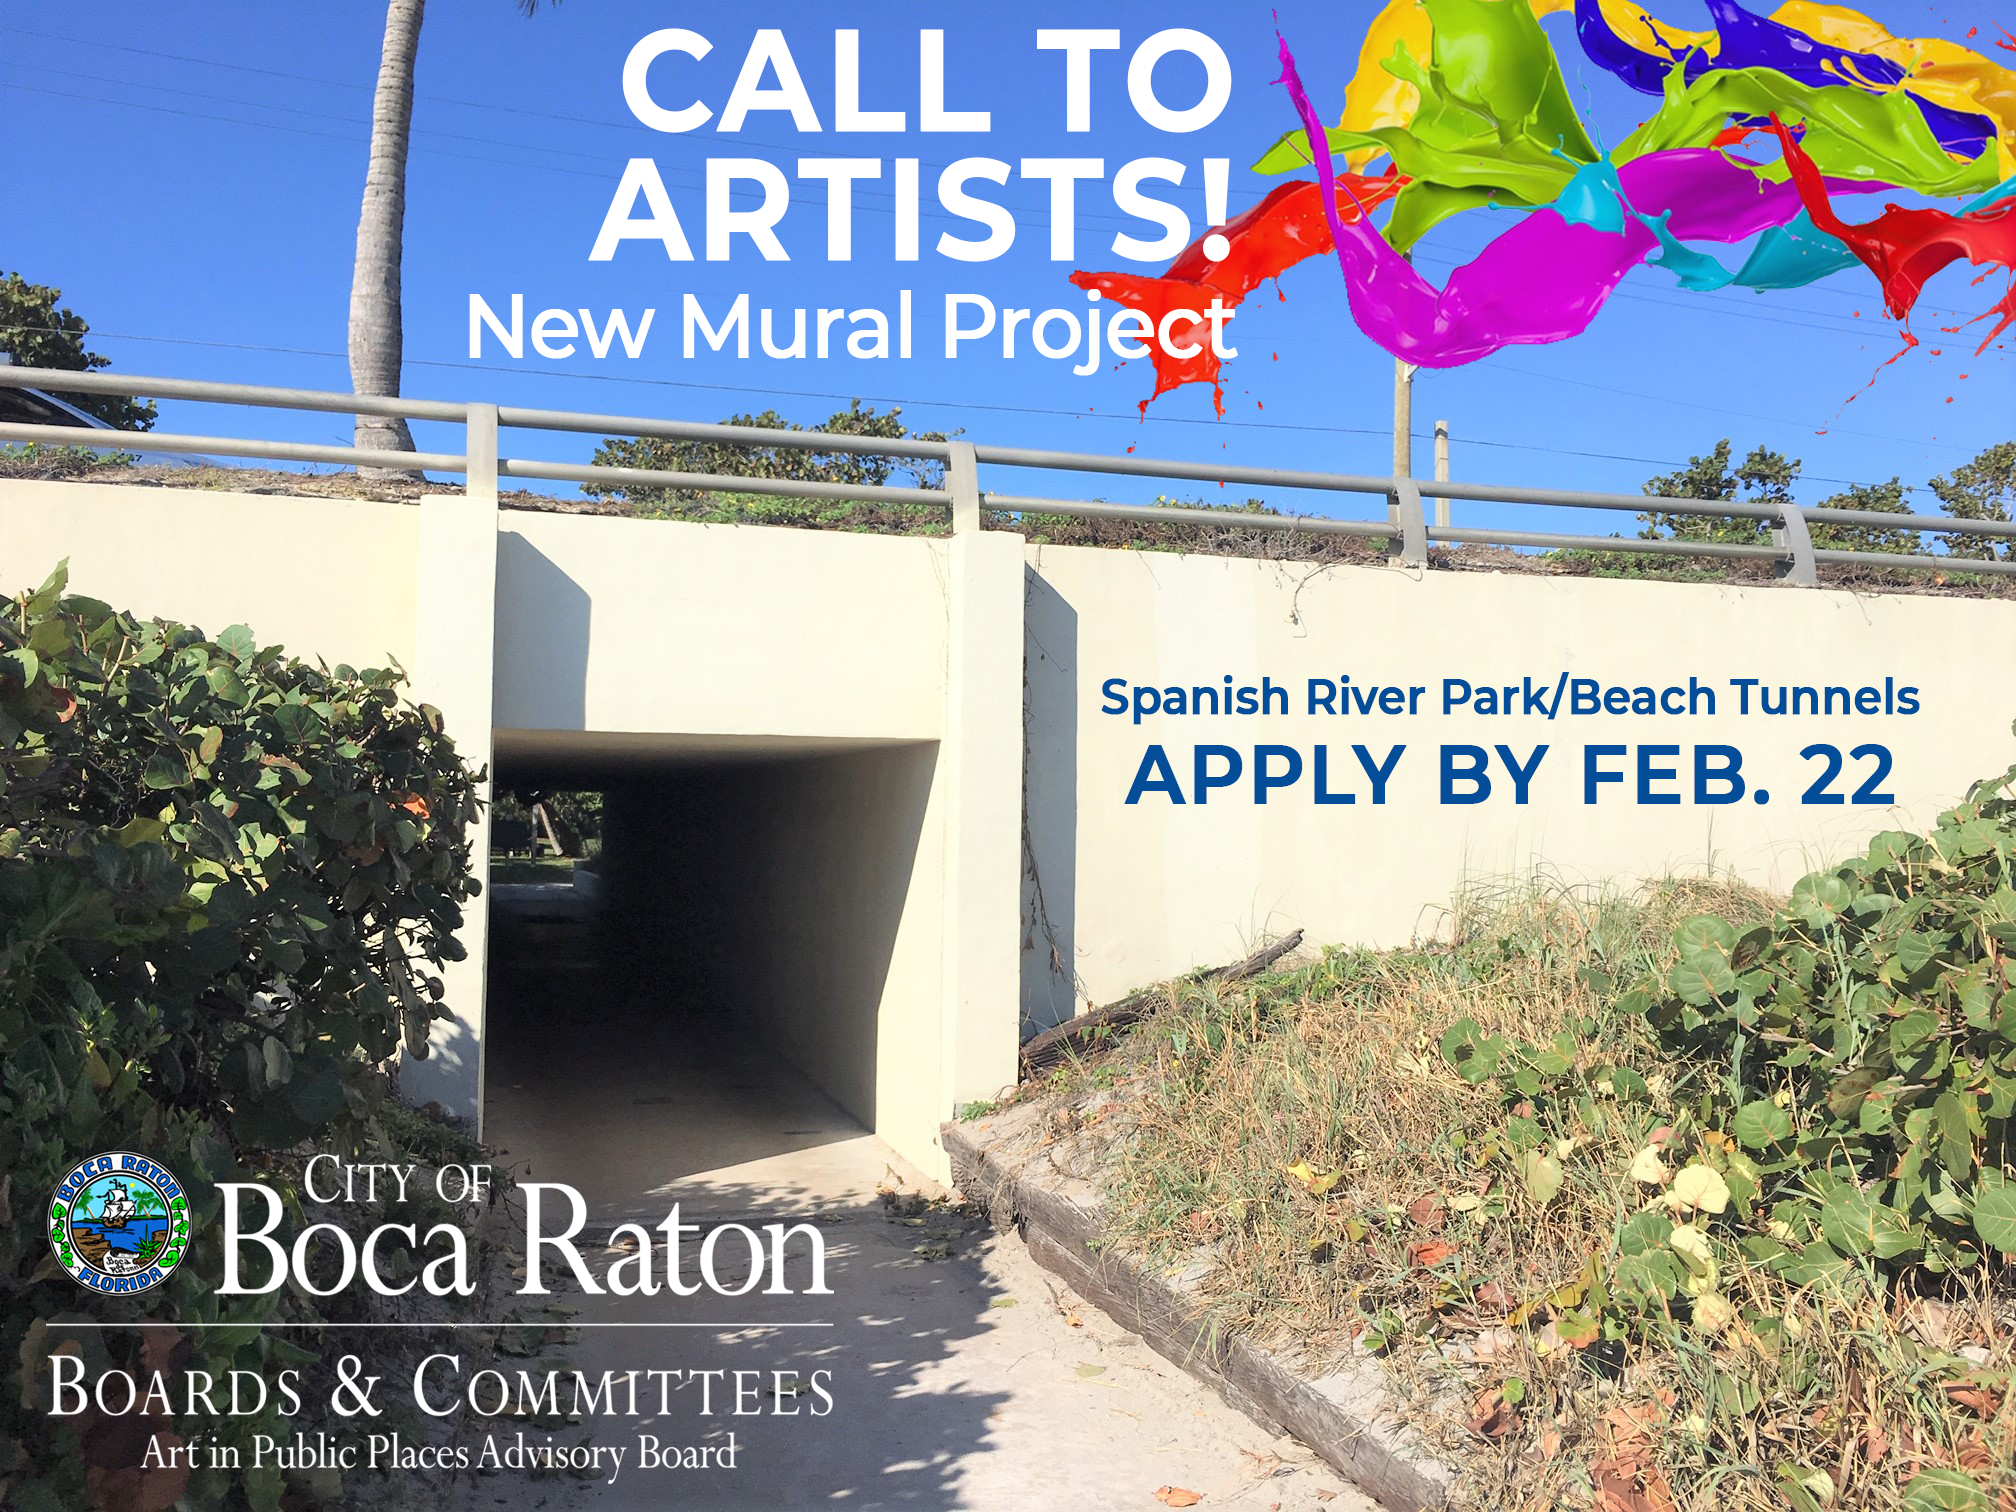 Call to artists! New mural project. Spanish River Park/Beach Tunnels. Apply by Feb. 22. City of Boca